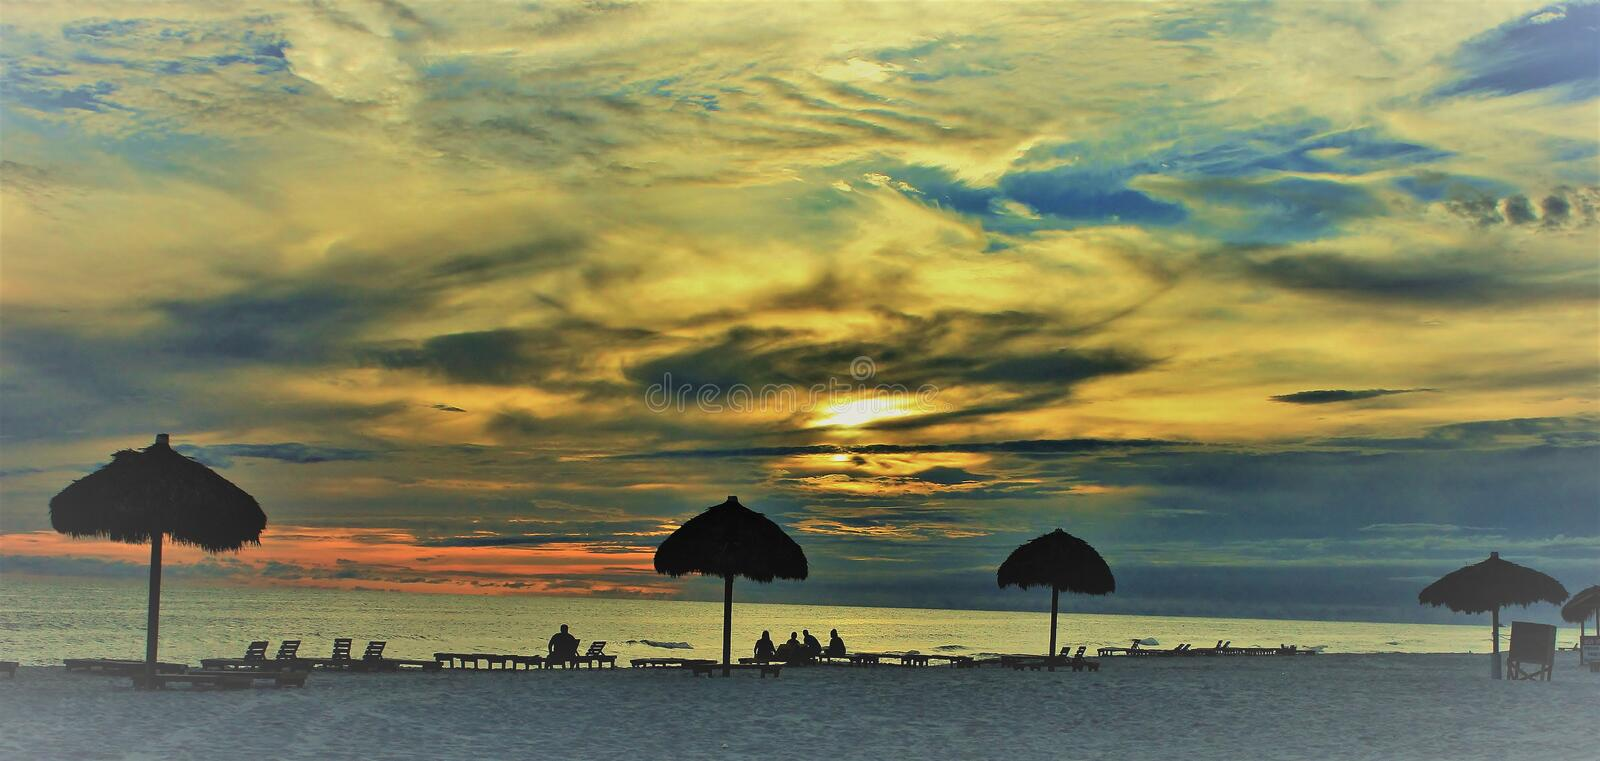 Panama City Beach Gulf of Mexico Palm umbrellas near sunset picturesque Deer stock photography